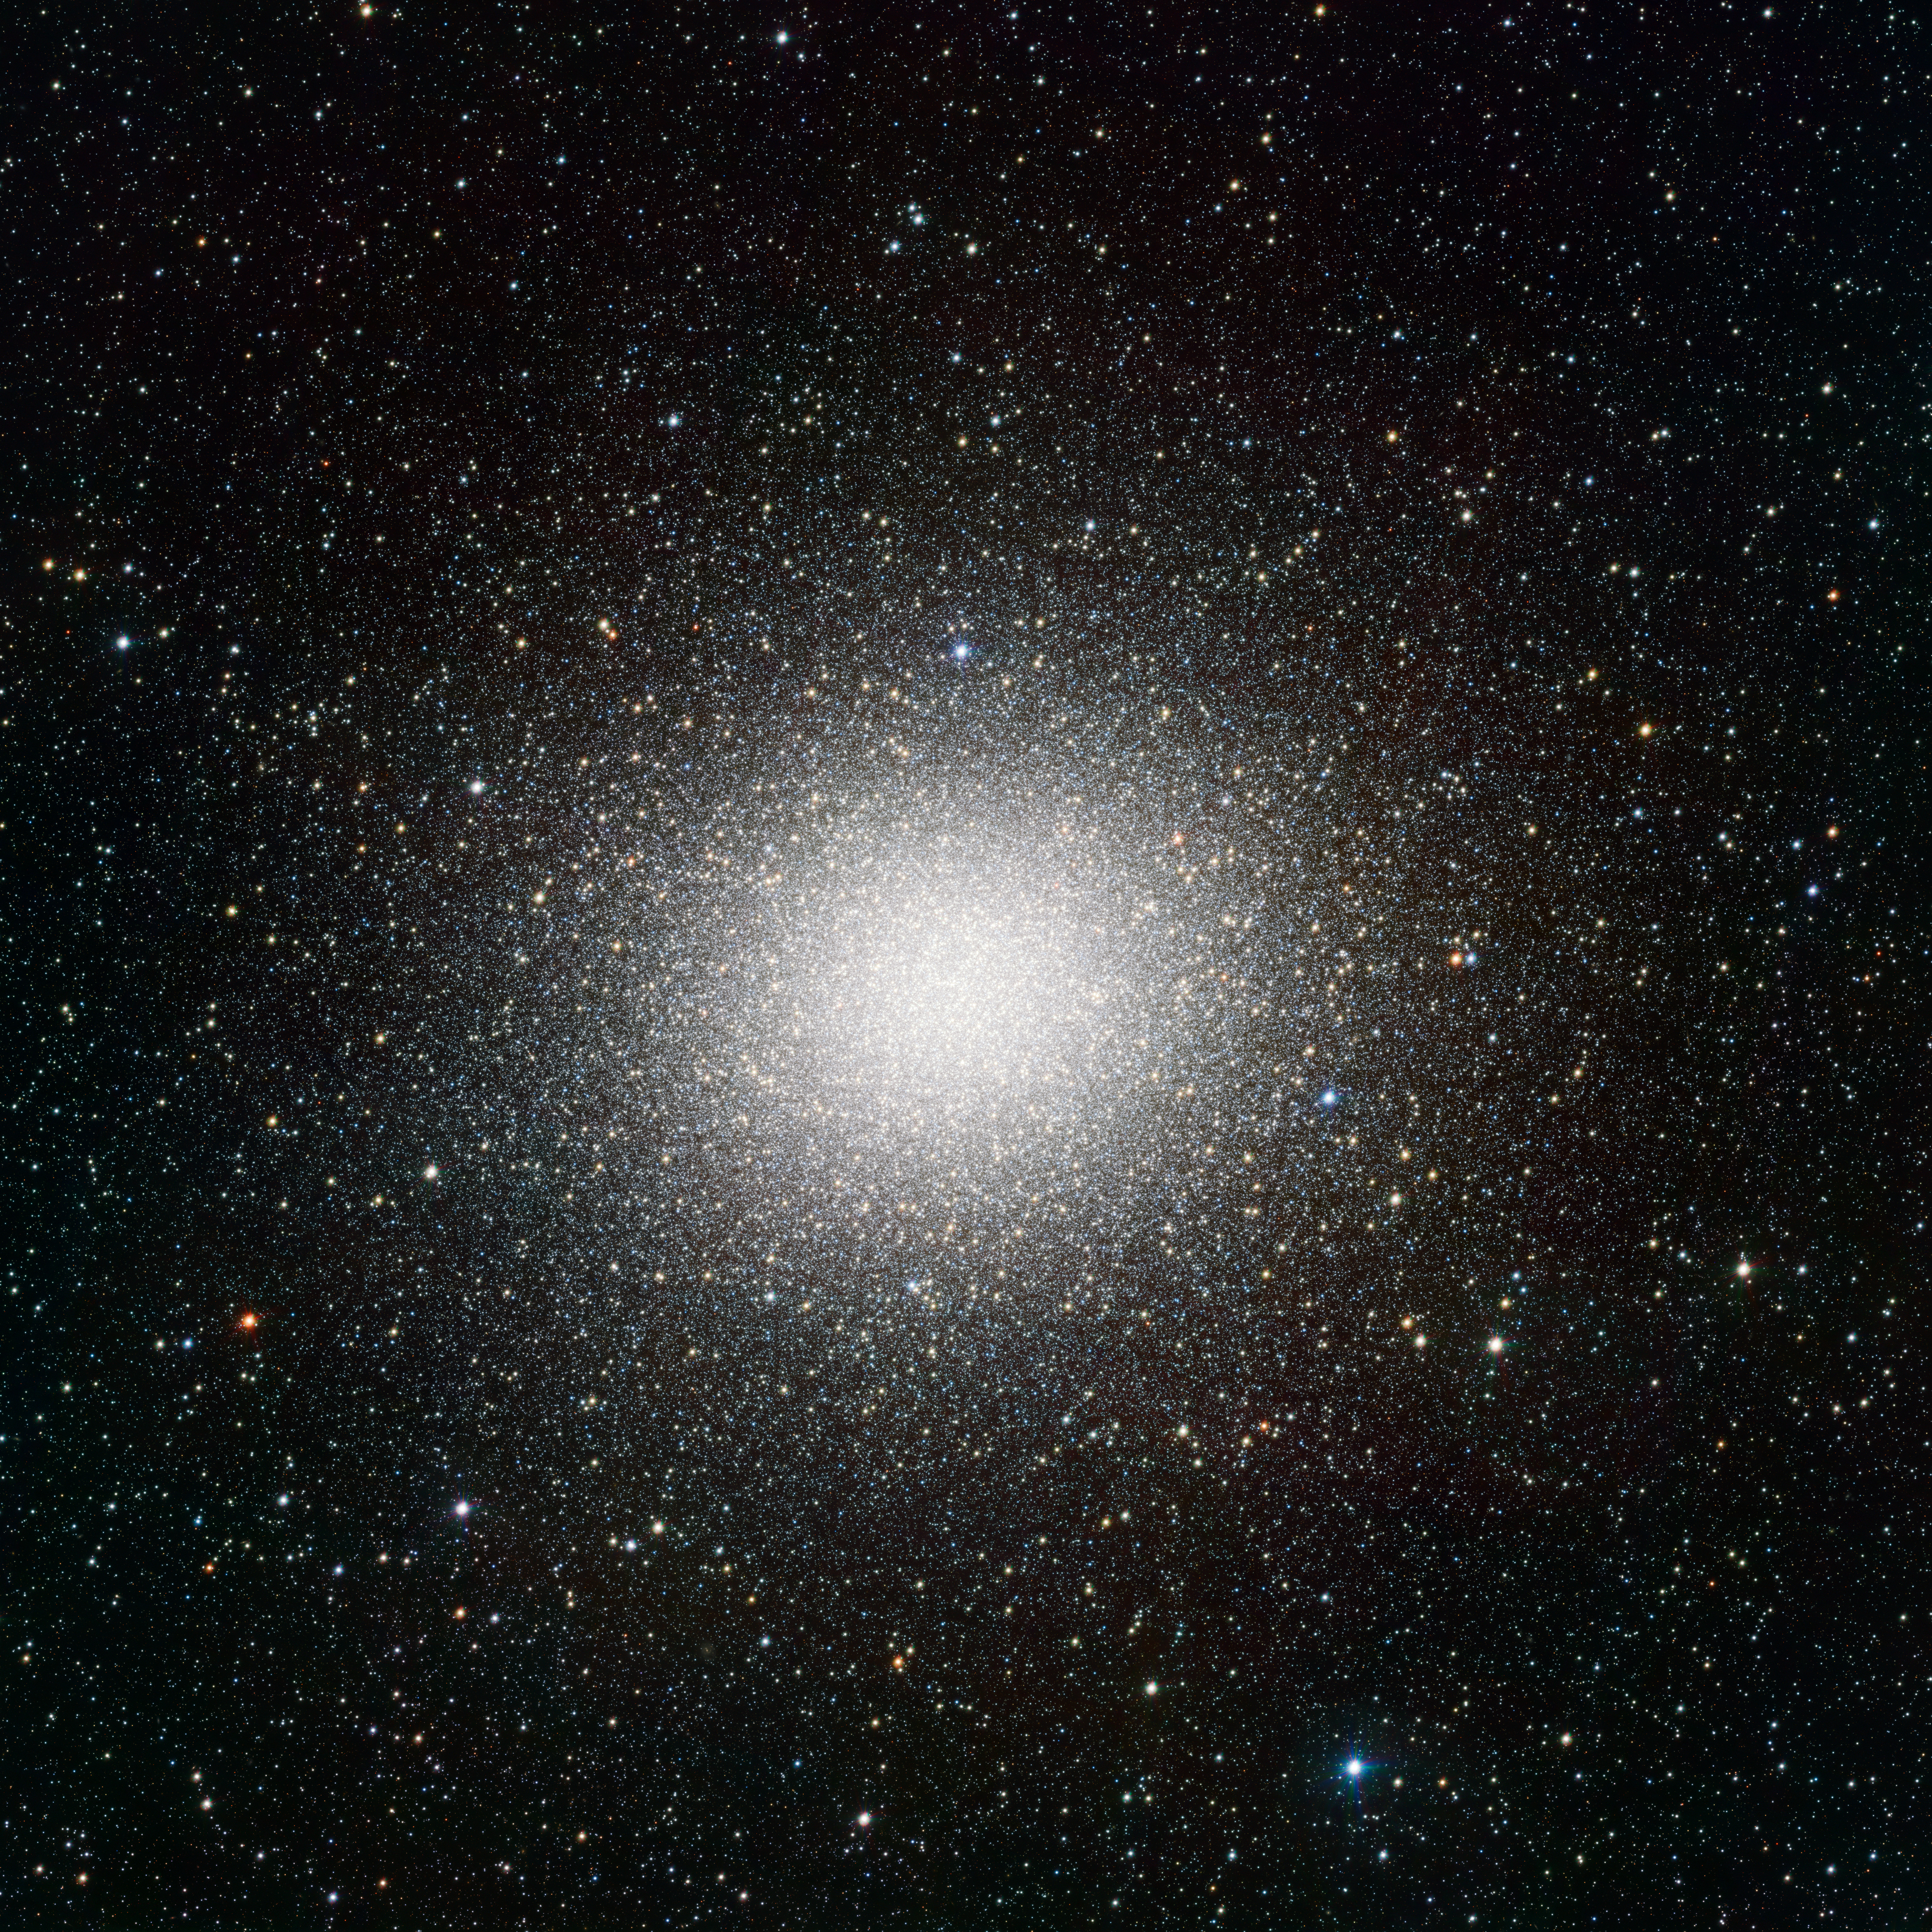 Omega Centauri Star Cluster by VST Survey Telescope